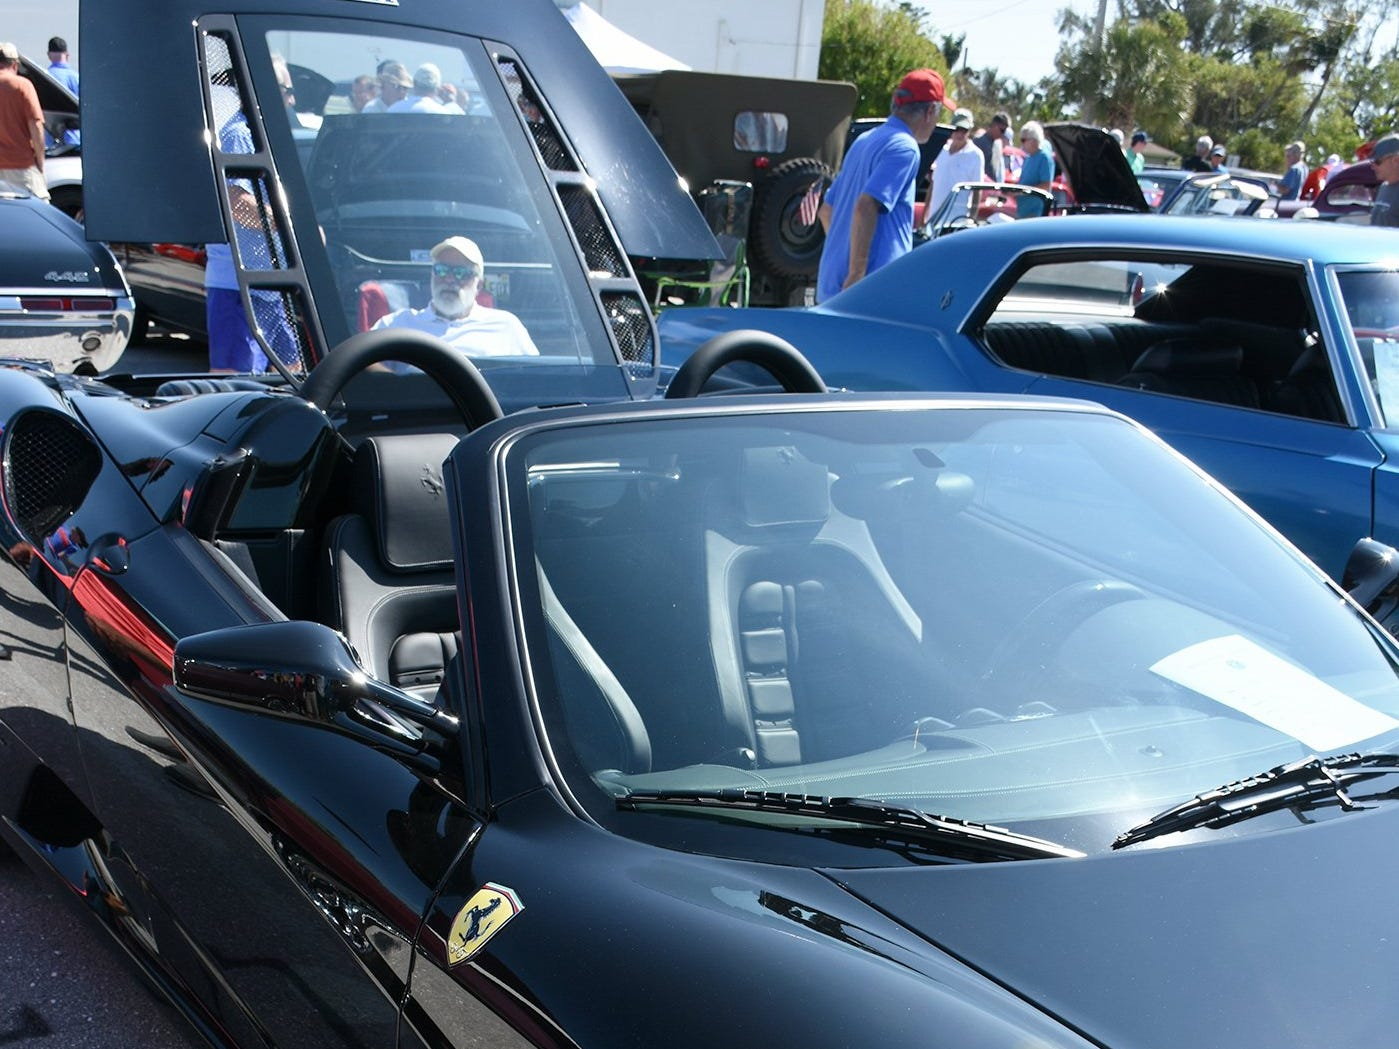 Craig Bagin is framed in the transparent rear deck of his Ferrari F-430. The annual Kiwanis car show brought 170 collectible cars and thousands of car enthusiasts to Veterans Community Park on Marco Island Sunday.